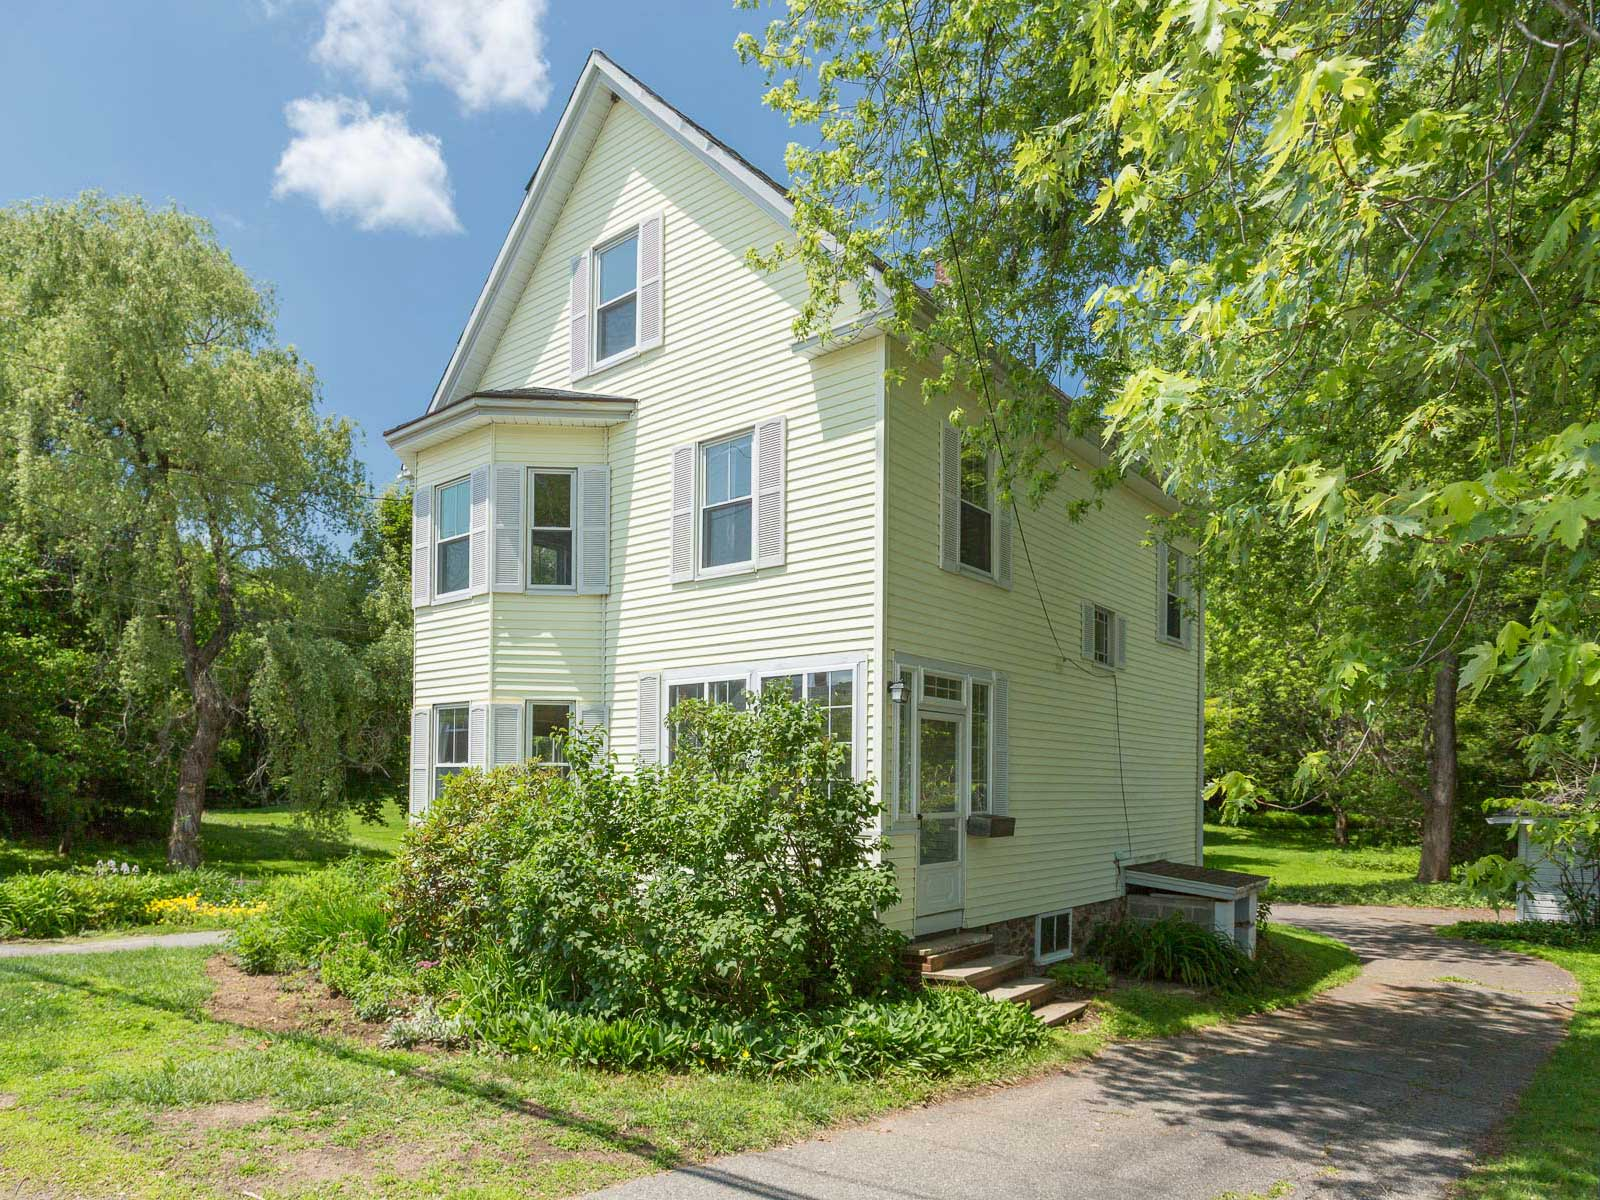 Single Family Home for Sale at New Englander near Kittery Foreside 159 Whipple Road Kittery, Maine 03904 United States